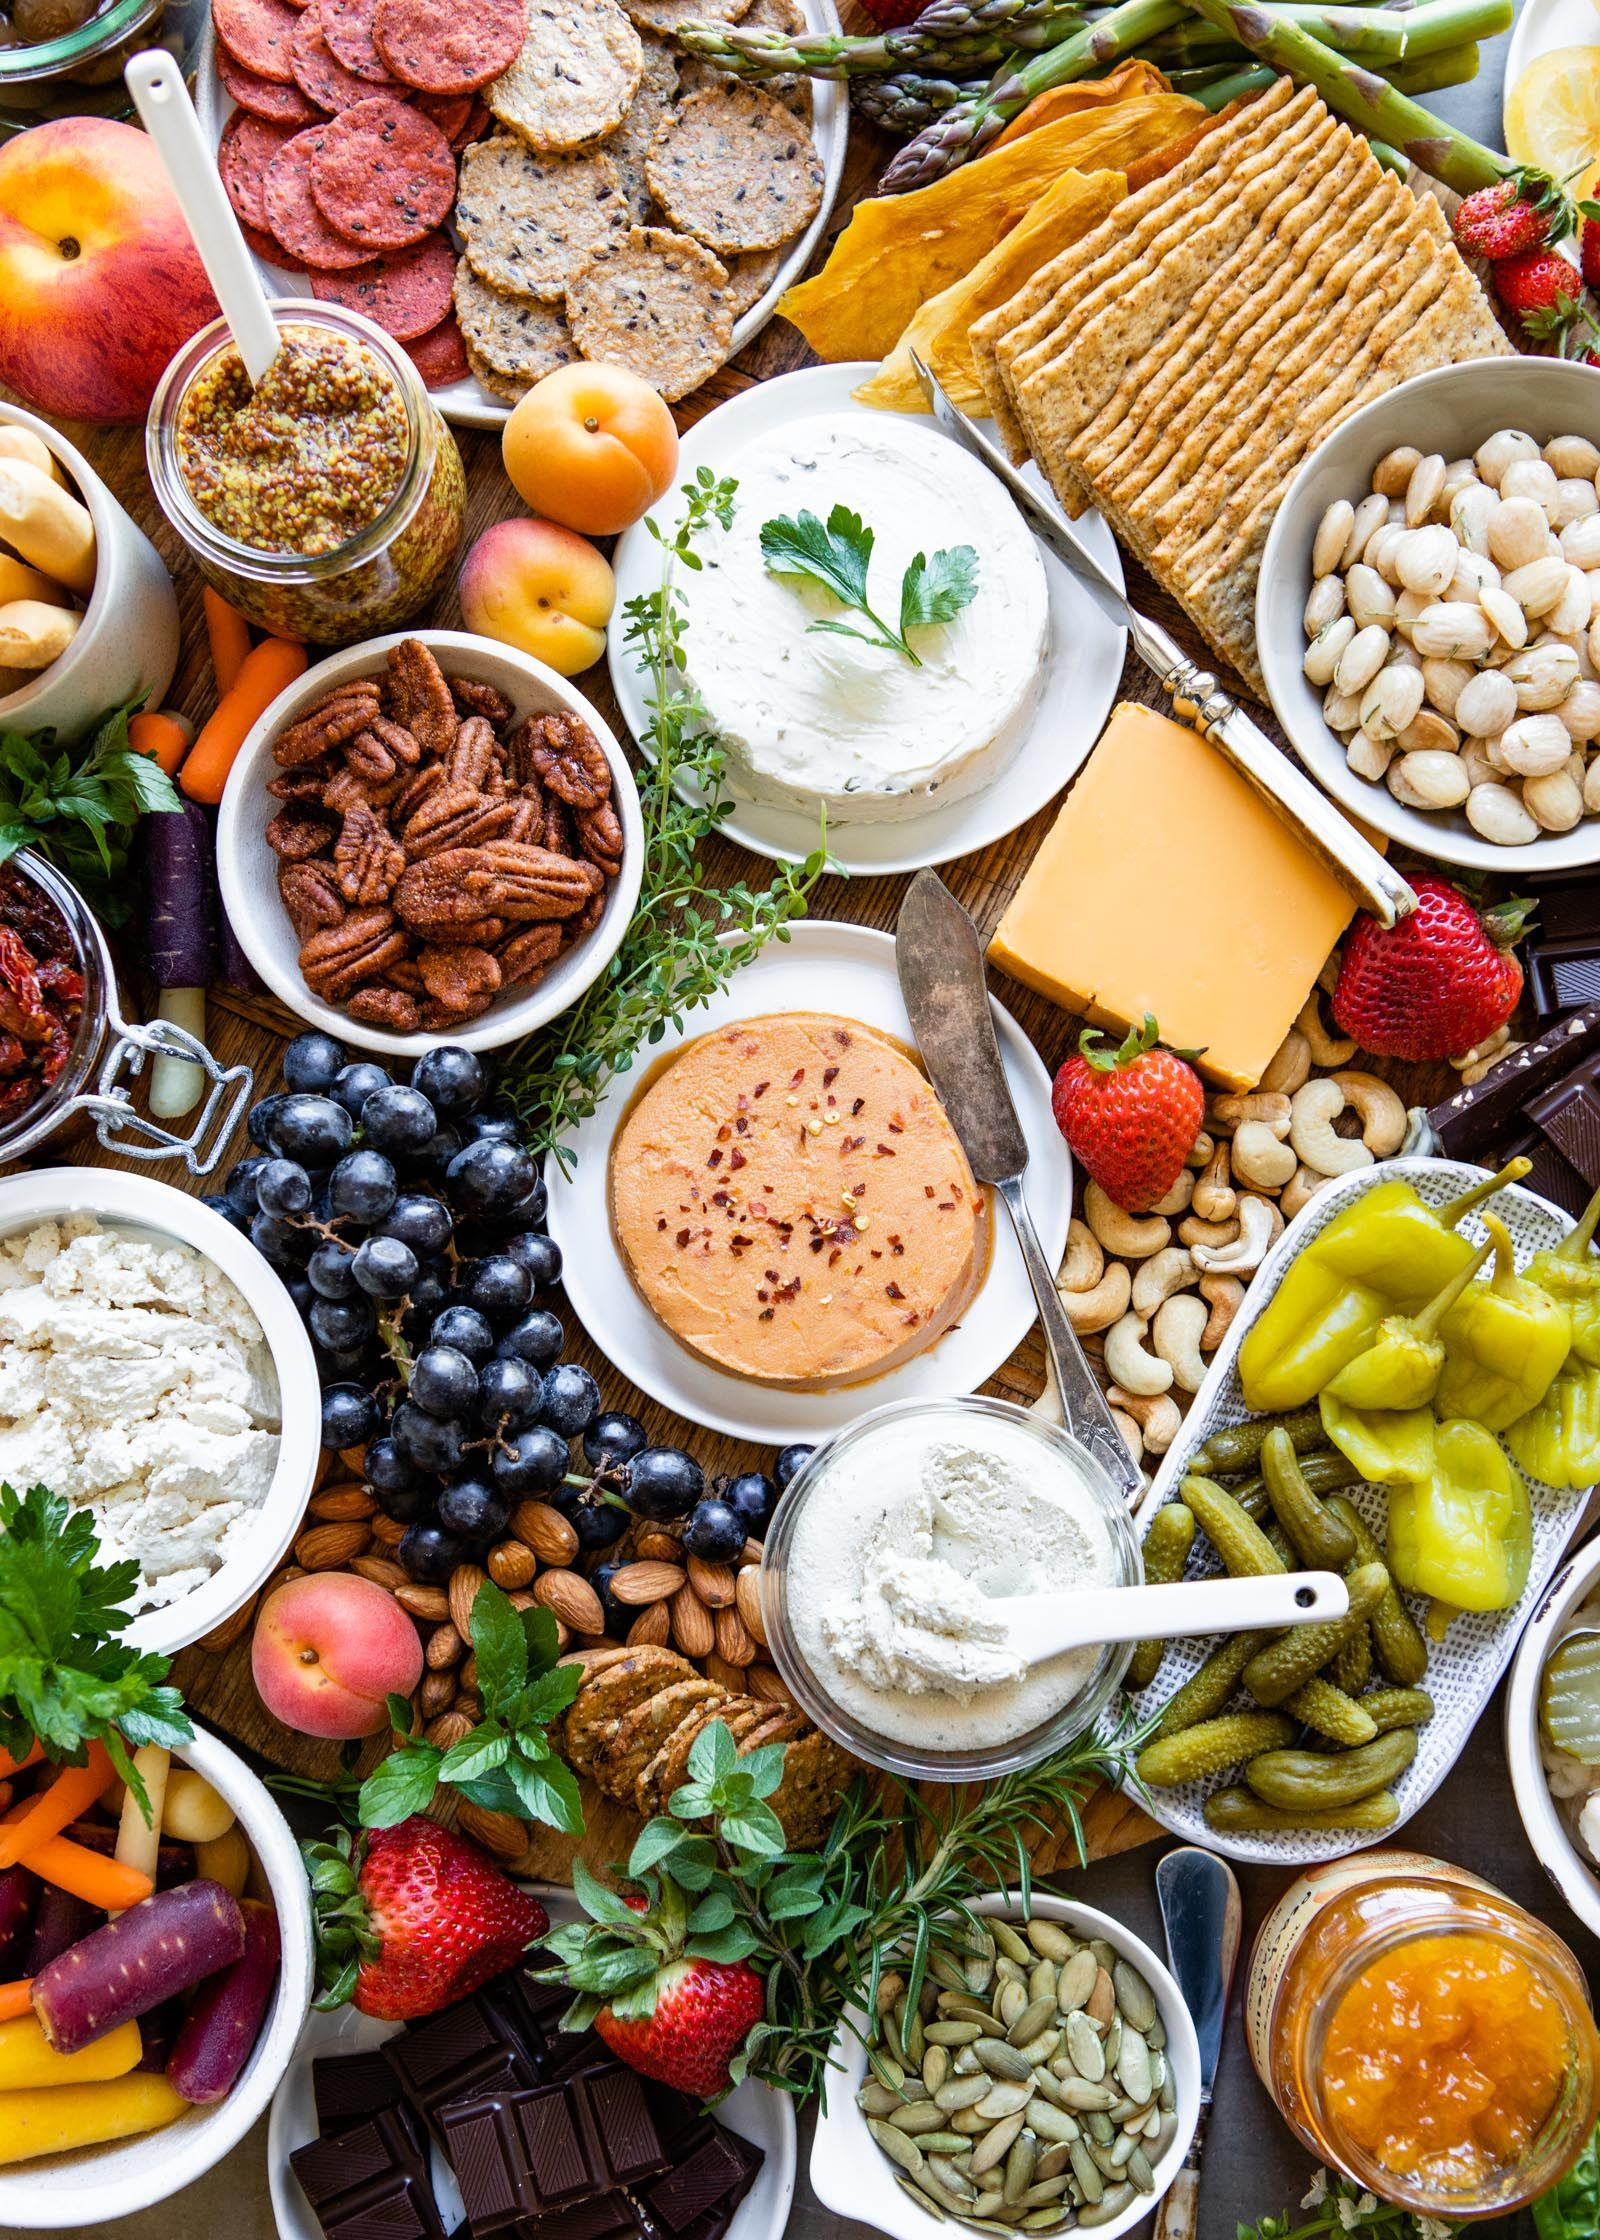 How To Build An Epic Vegan Cheese Board Hello Veggie In 2020 Vegan Cheese Boards Vegan Cheese Healthy